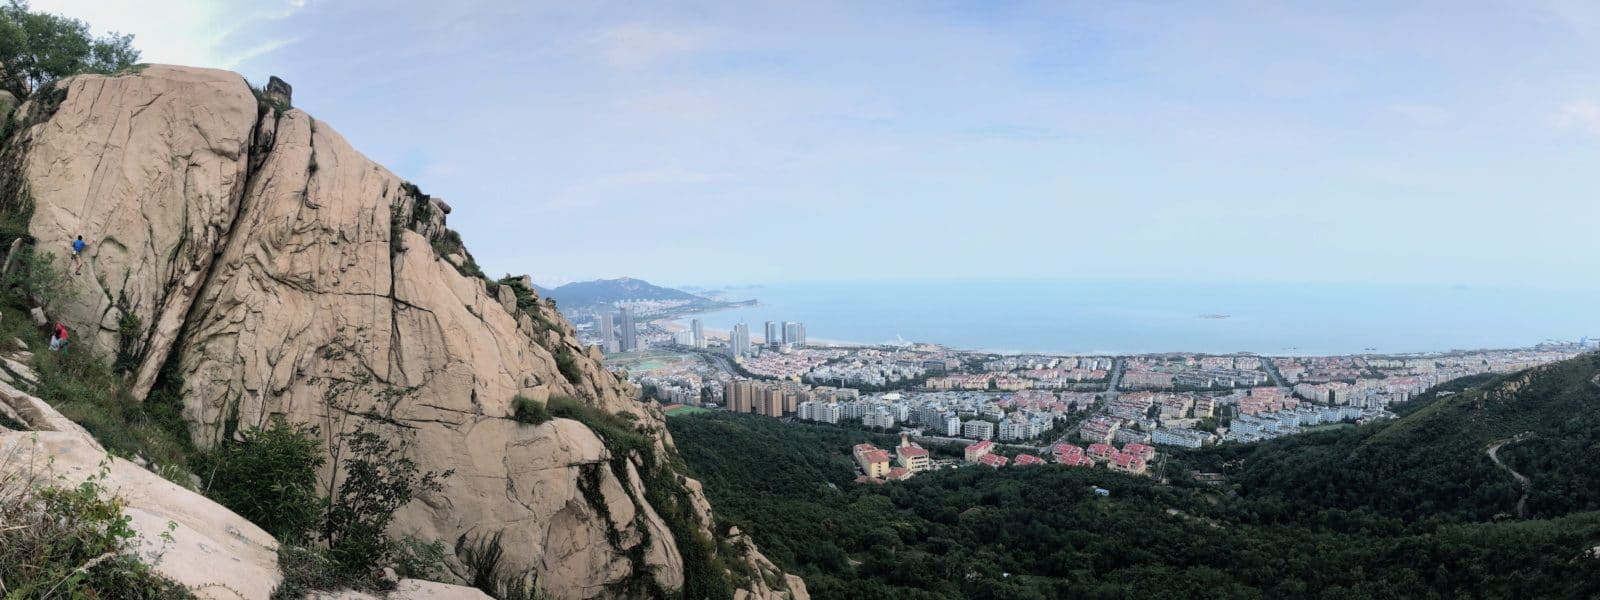 qingdao-scenic-view-climbscout